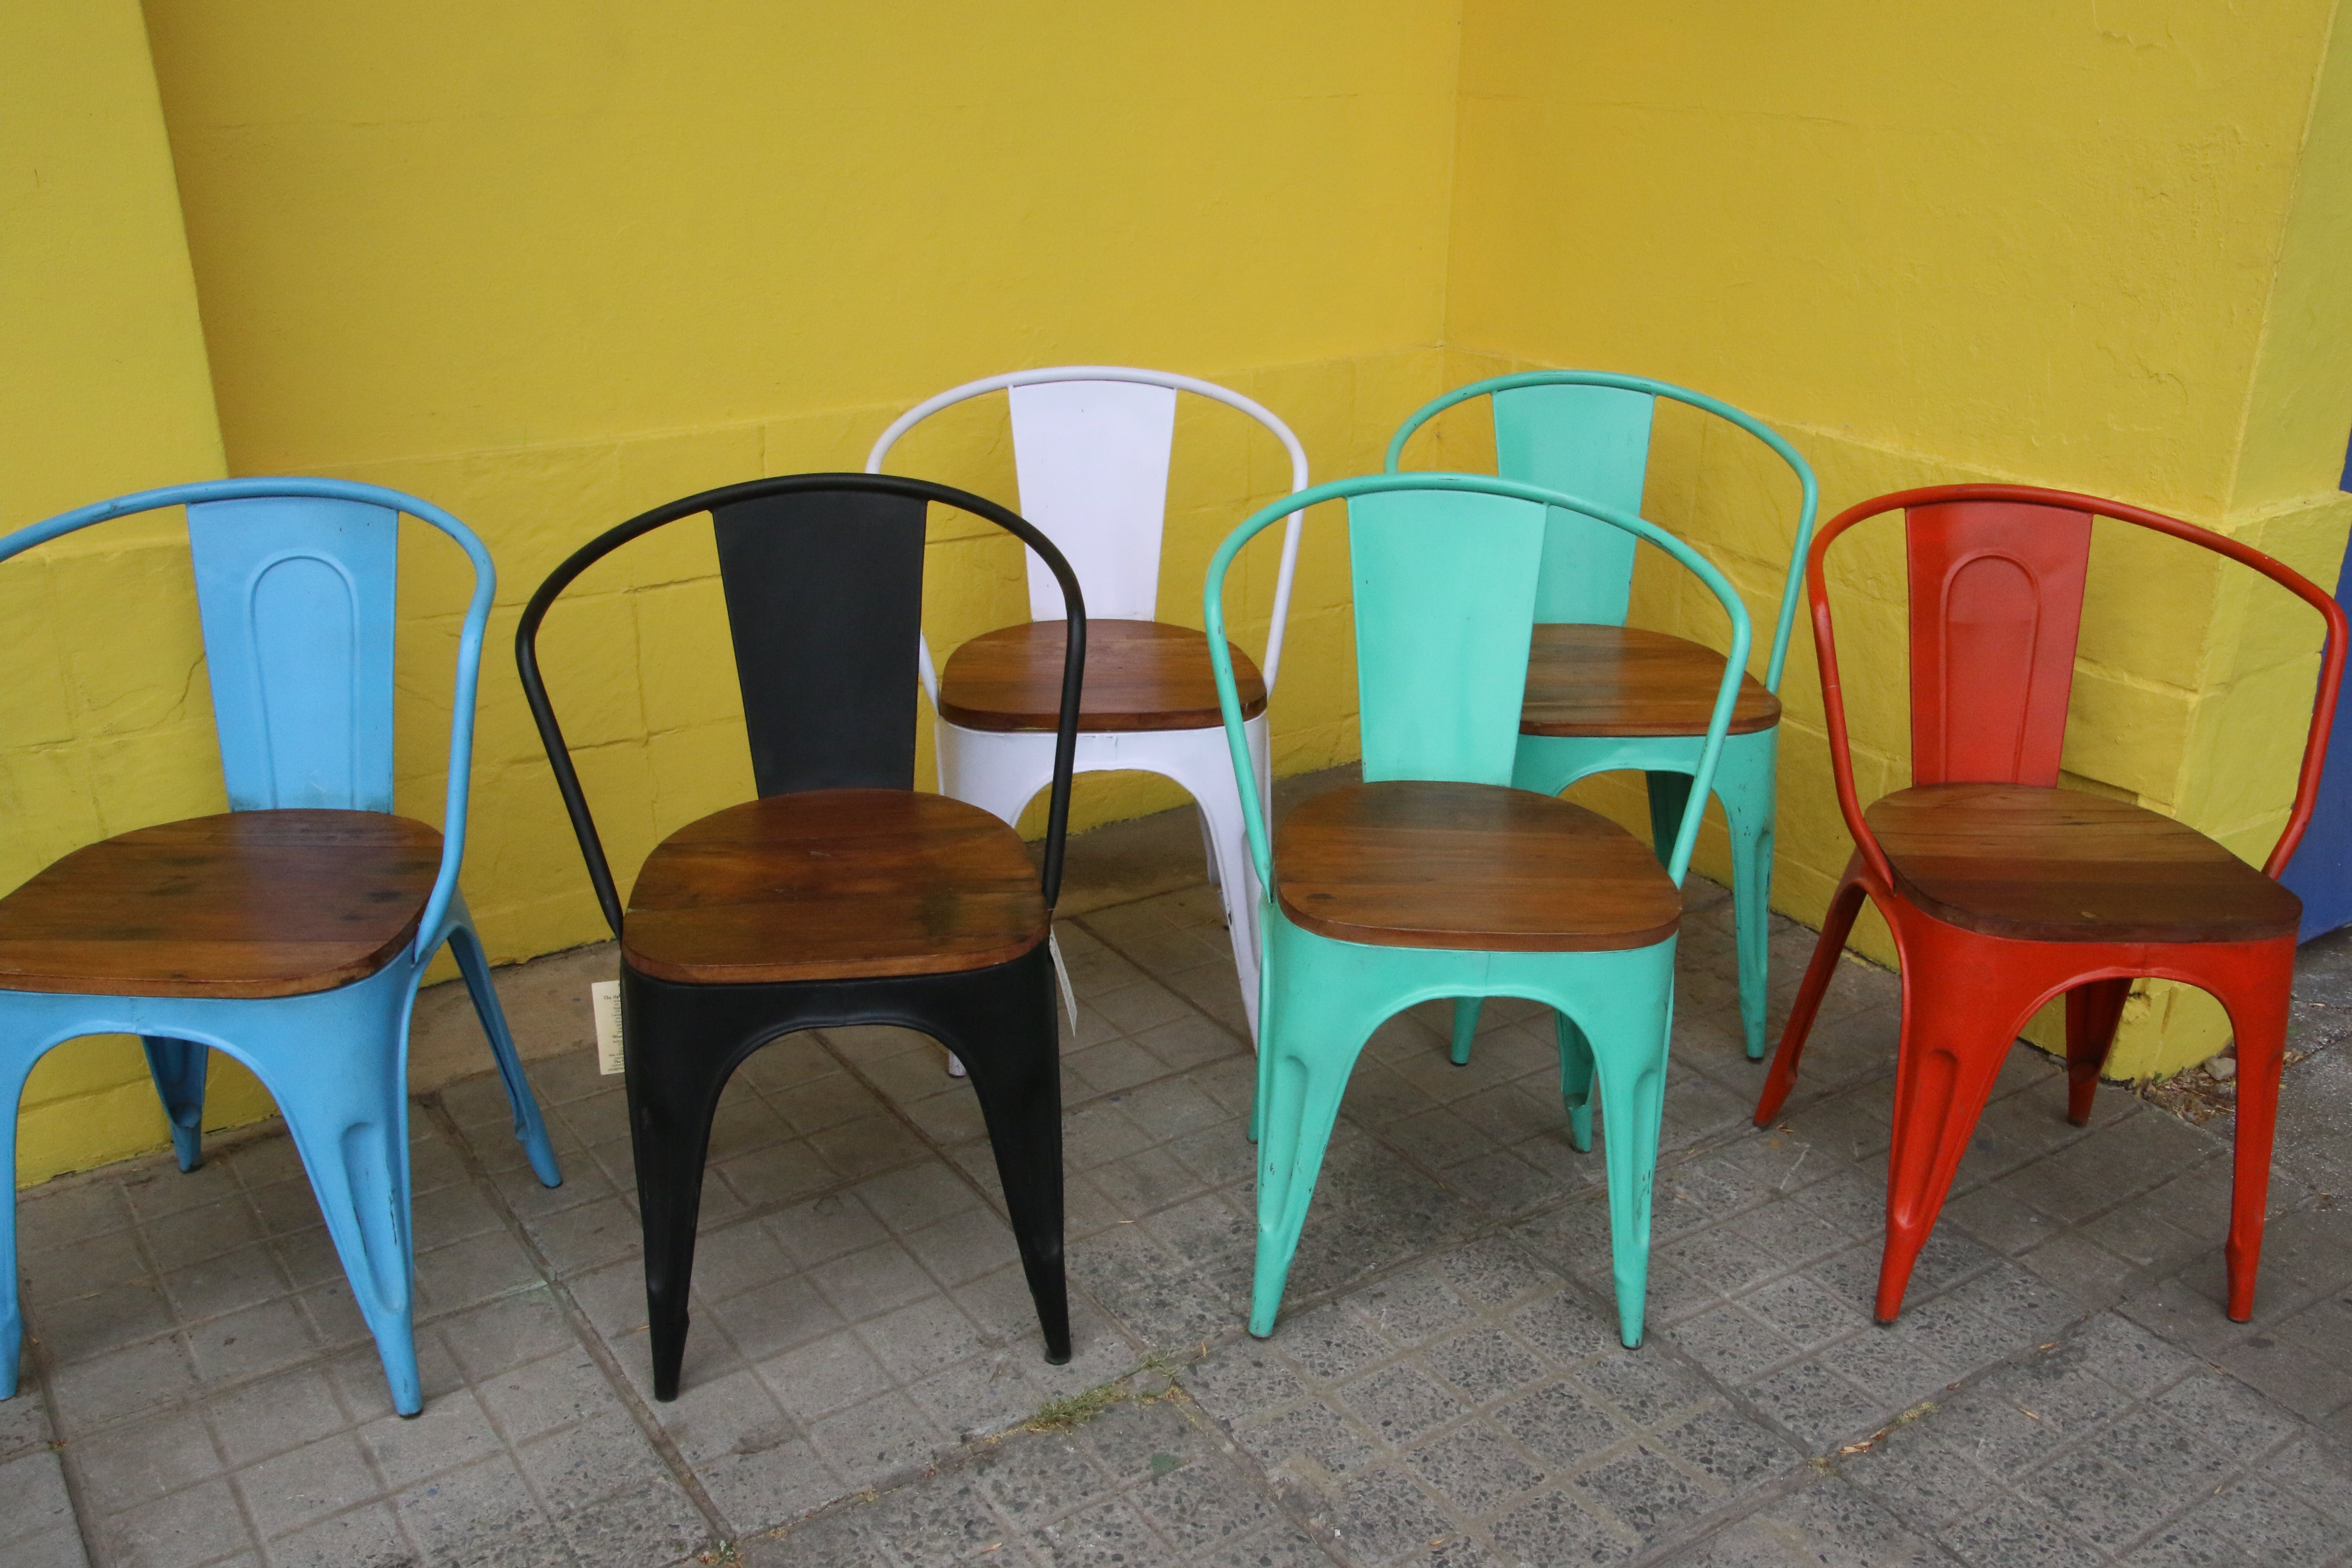 Free stock photo of chairs, colorful, furniture, have a seat